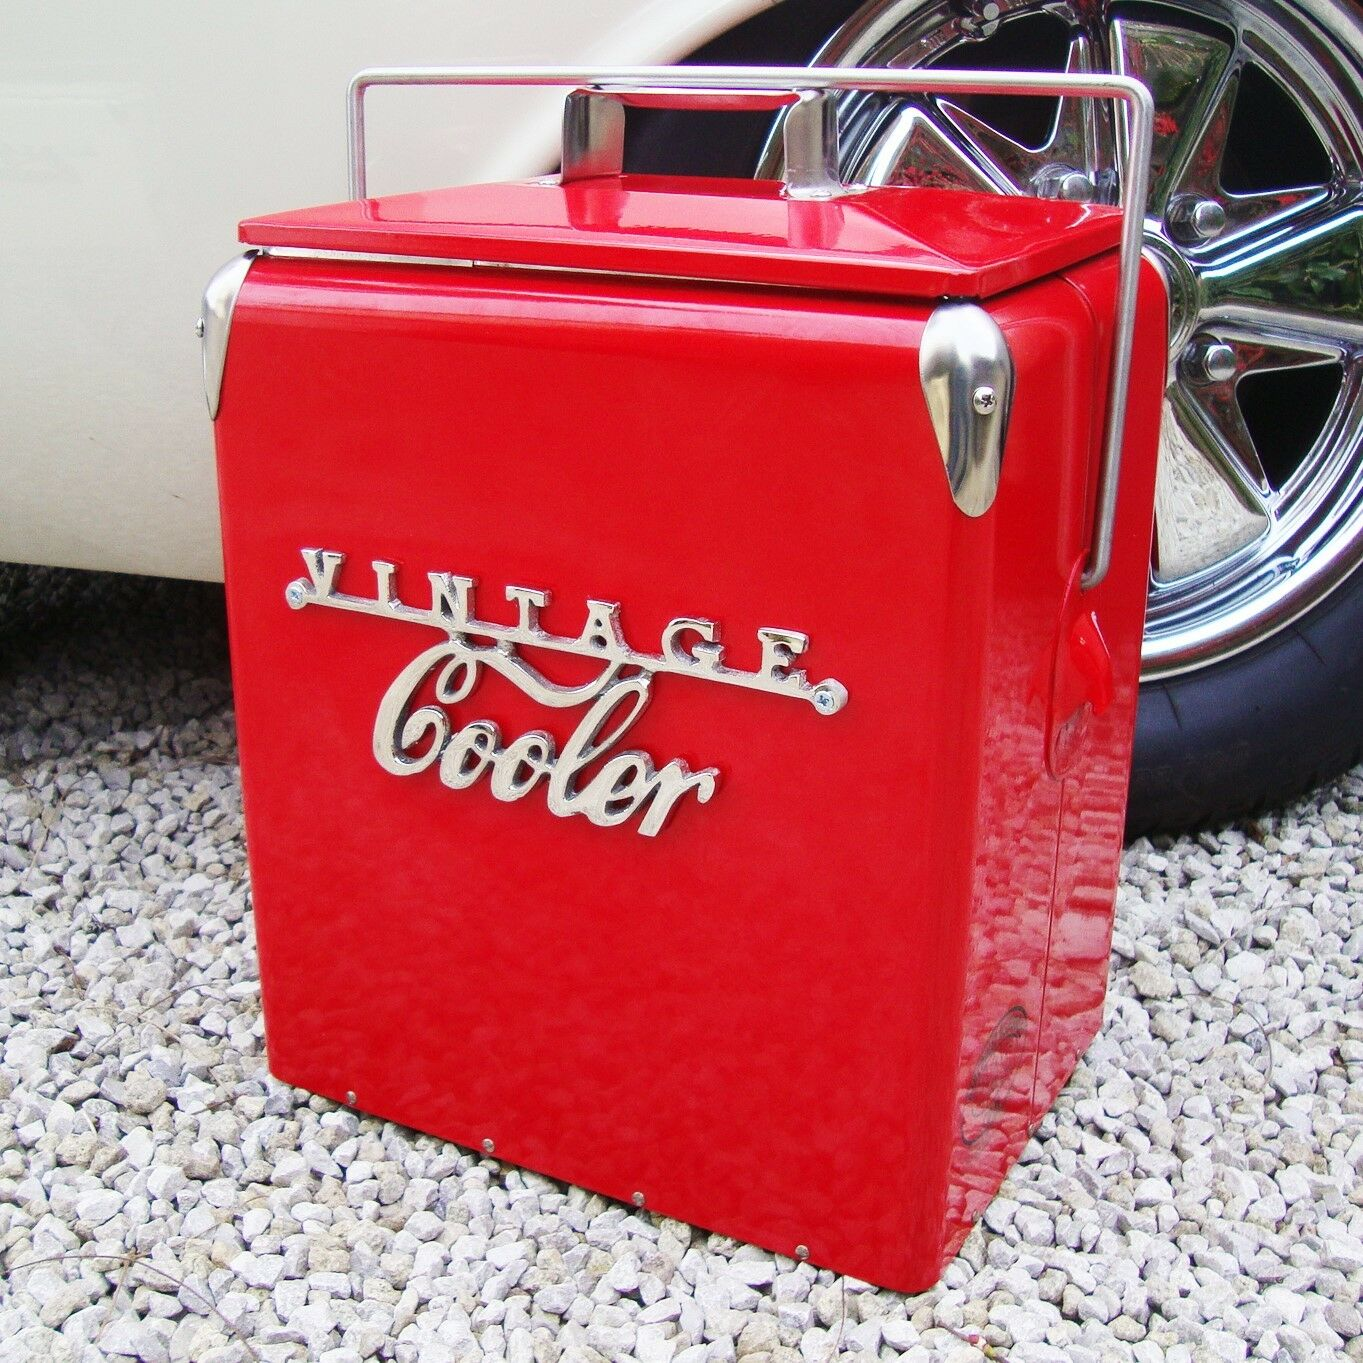 VINTAGE COOLER Coolbox RED Retro coca cola Coke Cool  box vw wedding present  everyday low prices